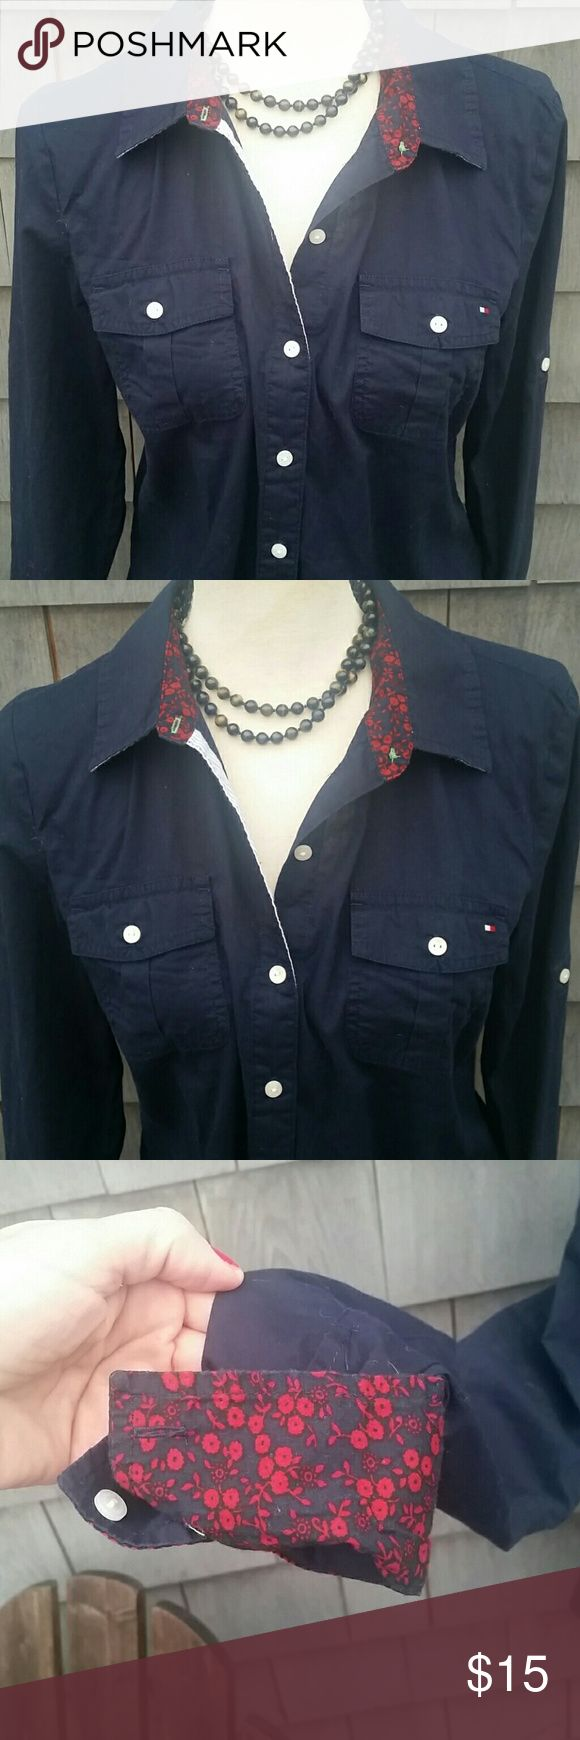 TOMMY HILFIGER NAVY BUTTON DOWN SHIRT Beautiful navy blue light weight shirt 100% cotton detail red cuff and inner collar. Nautical inspired. No rips or stains. Perfect condition Tommy Hilfiger Tops Button Down Shirts